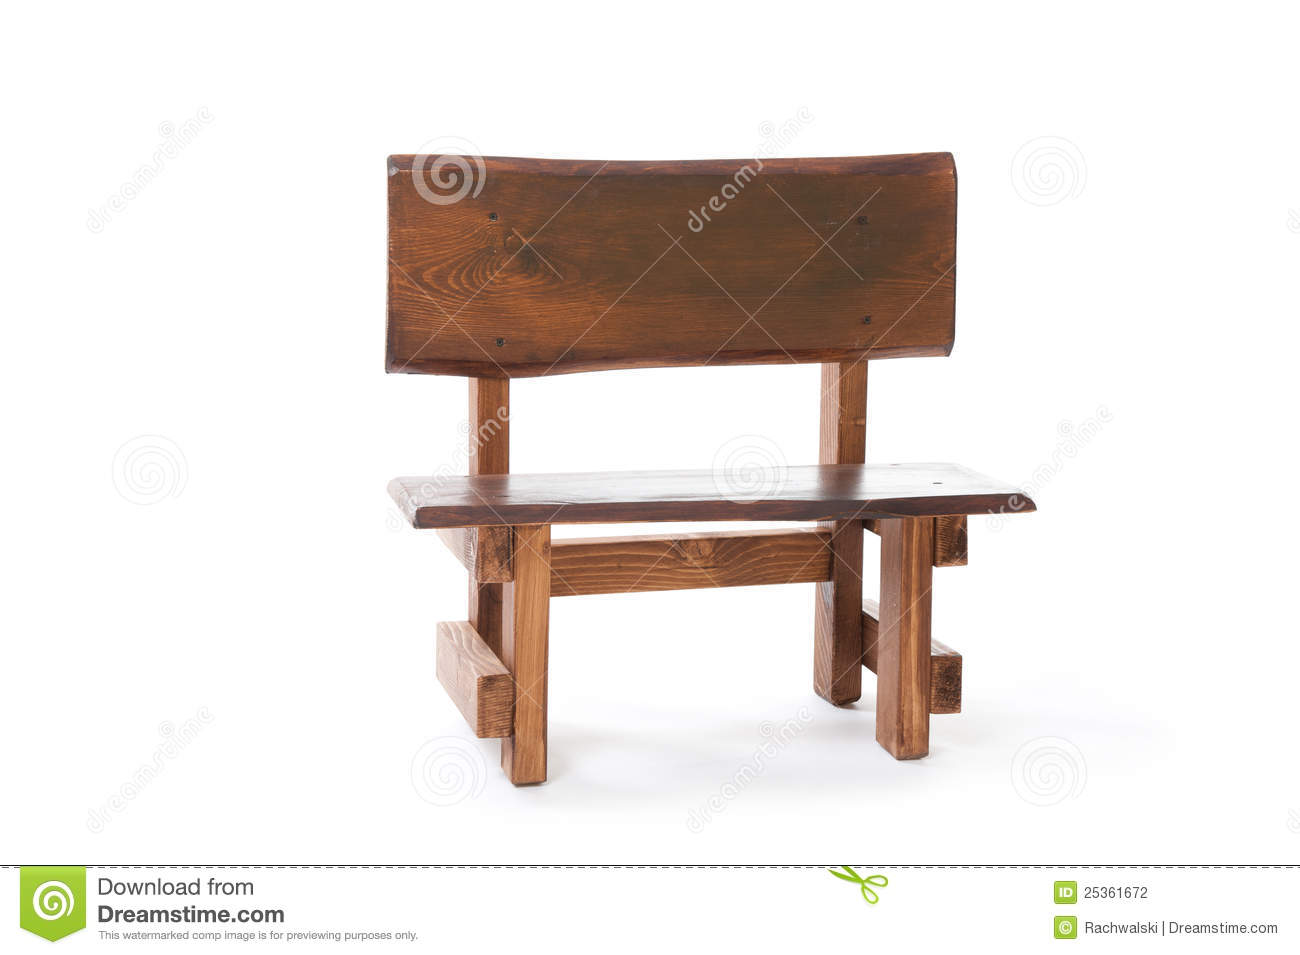 A Small Wooden Bench On A White Background Stock Photography Image 25361672